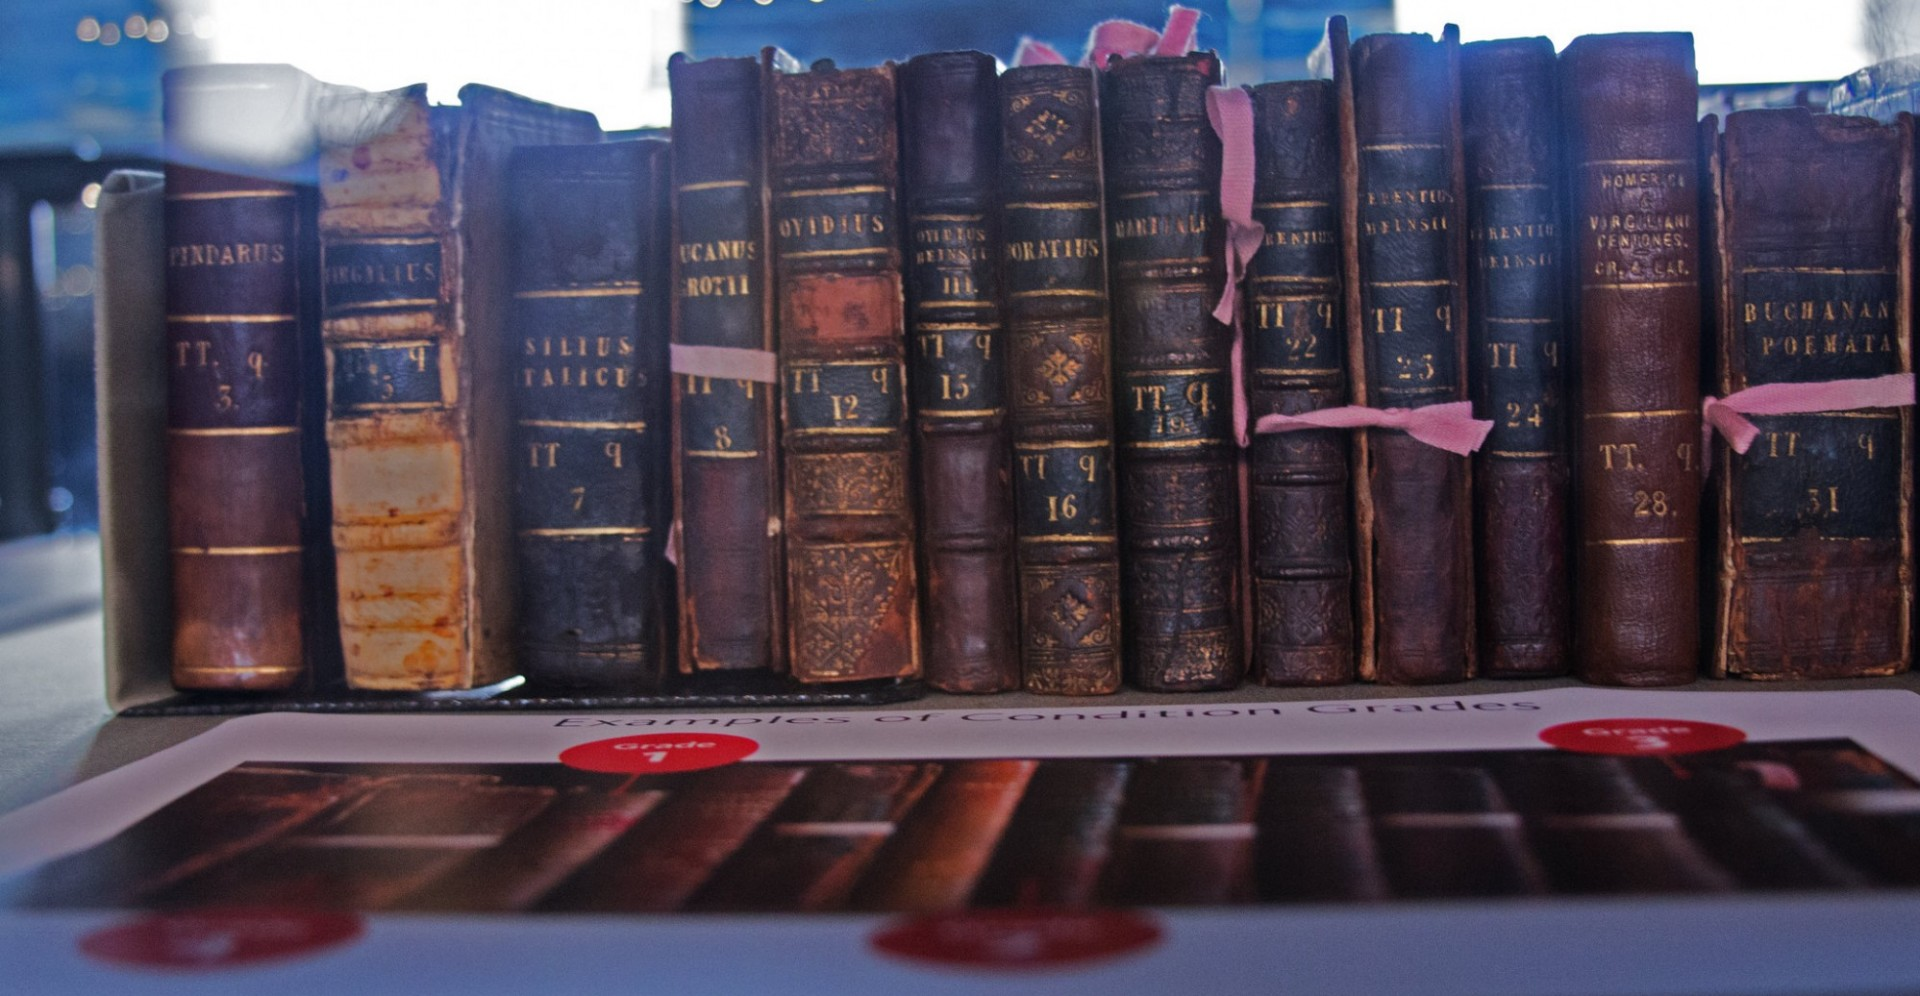 First edition printed books